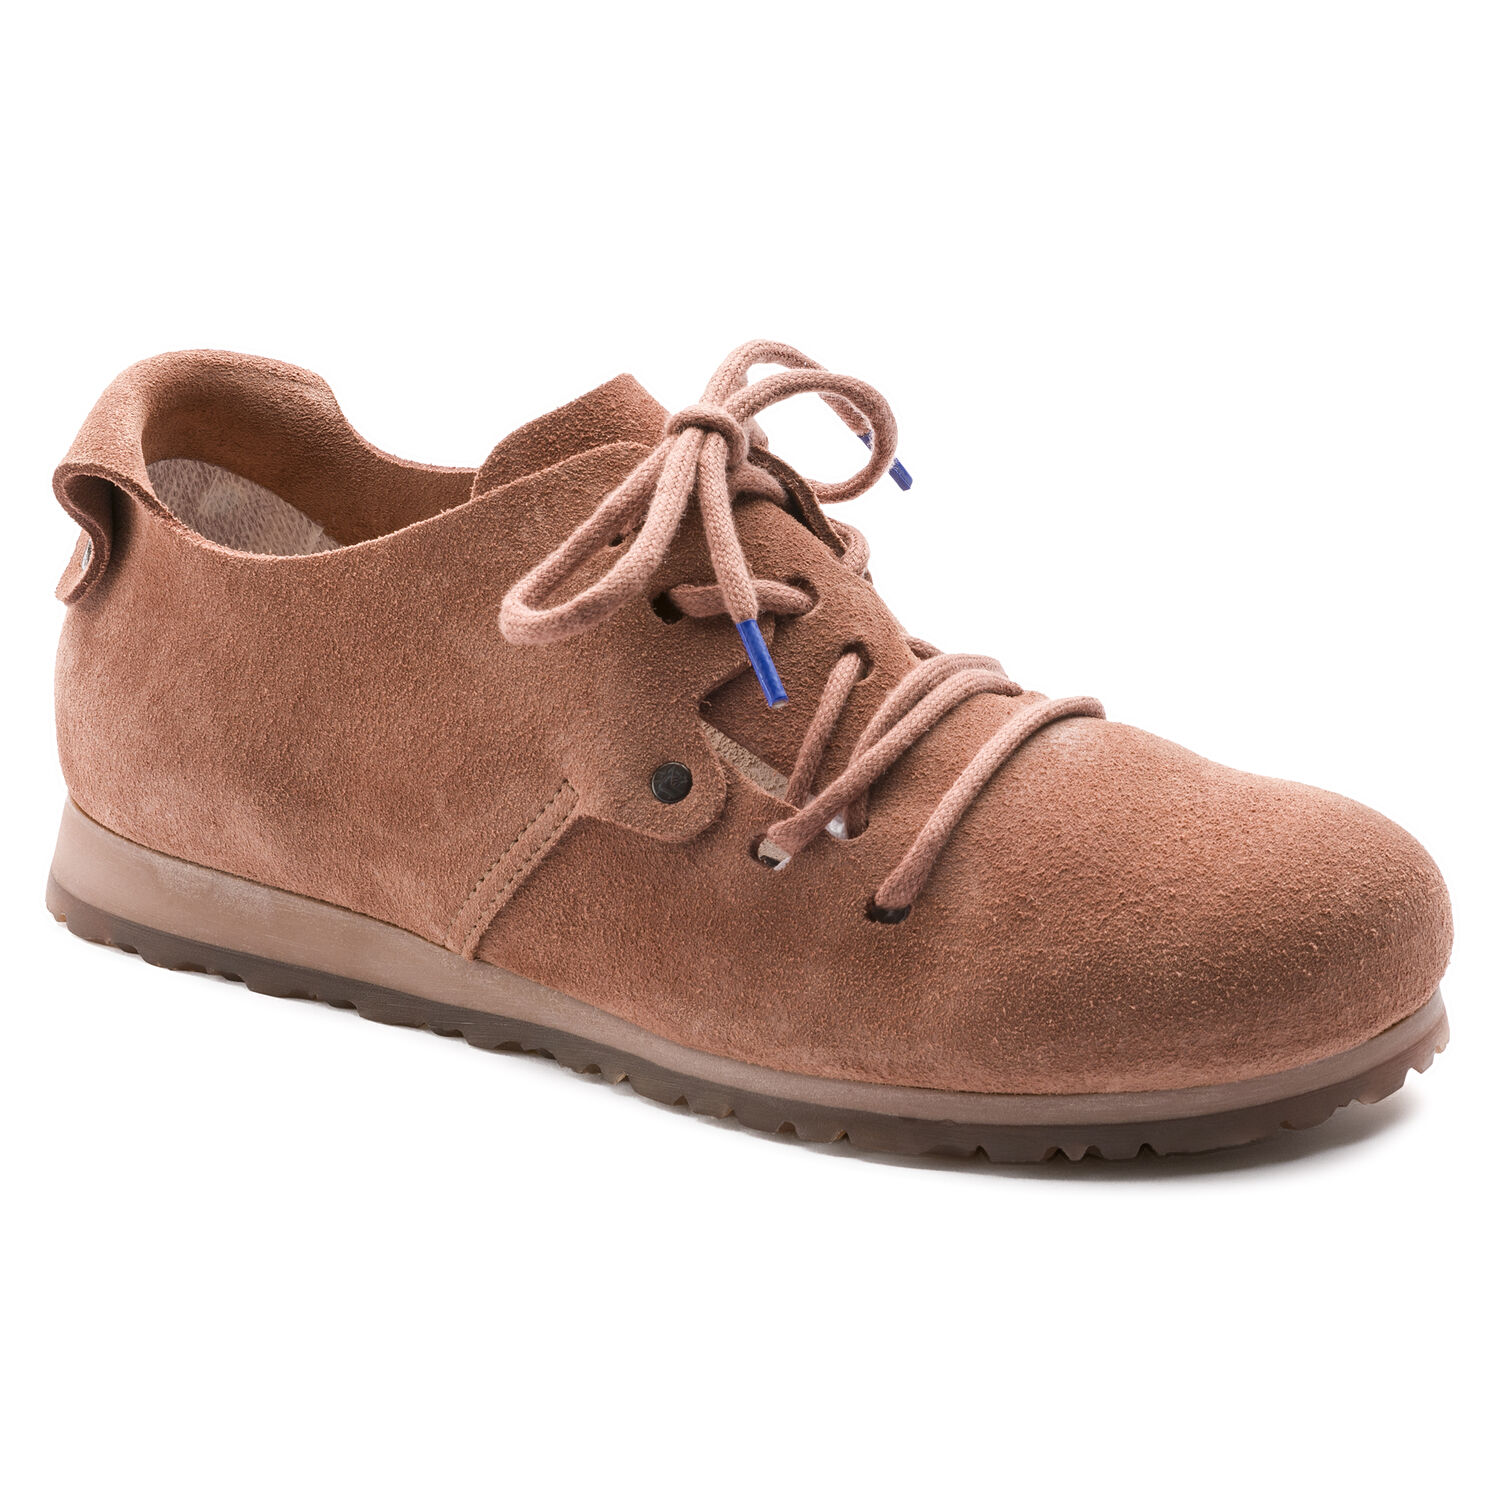 Montana Suede Leather